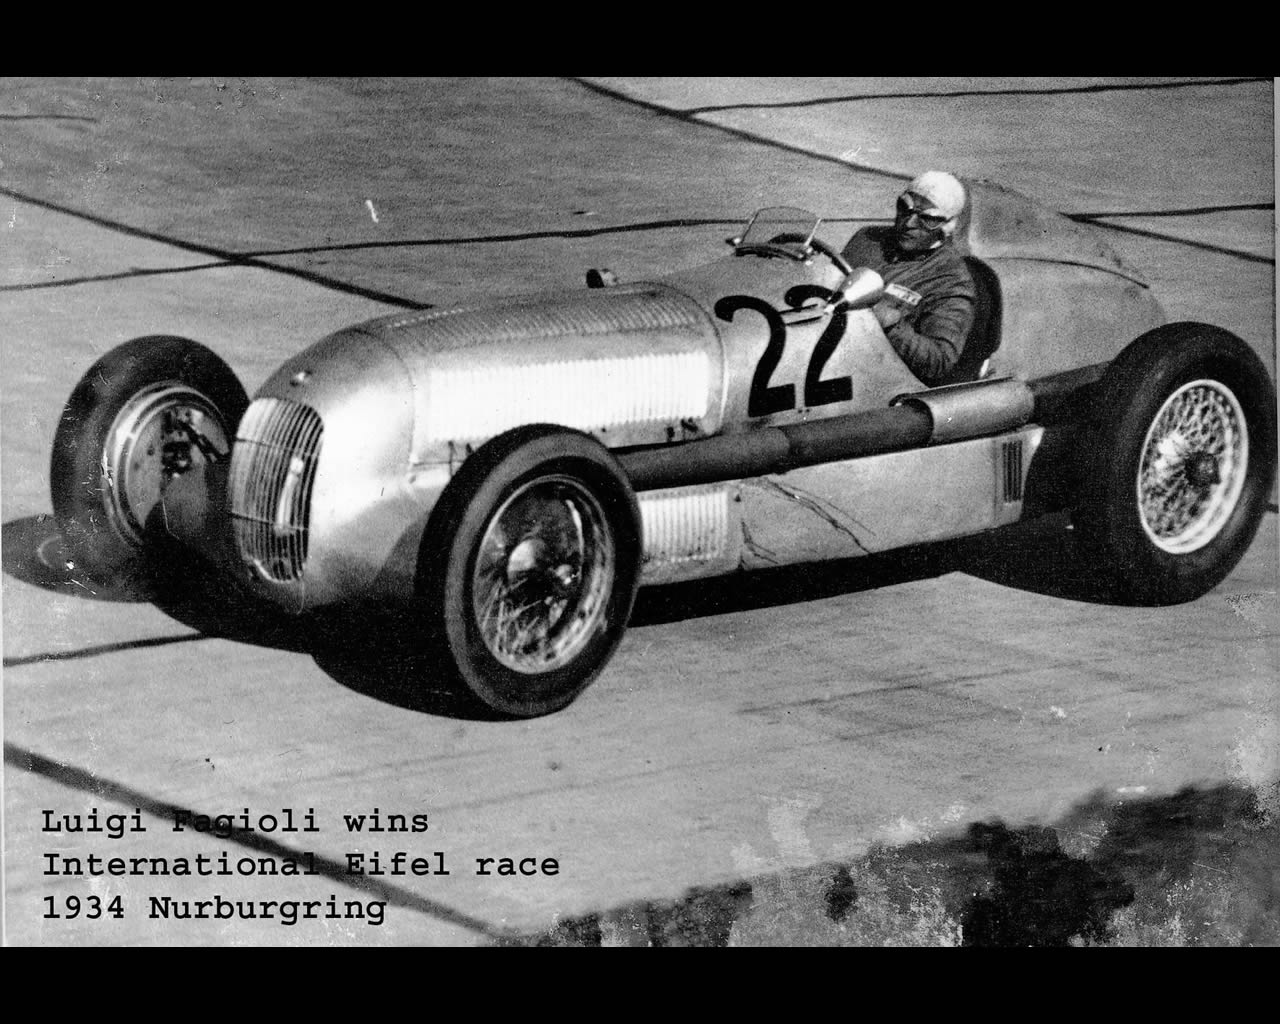 Wallpapers : Mercedes Silver Arrow W25 1934 1936 (click on image to ...